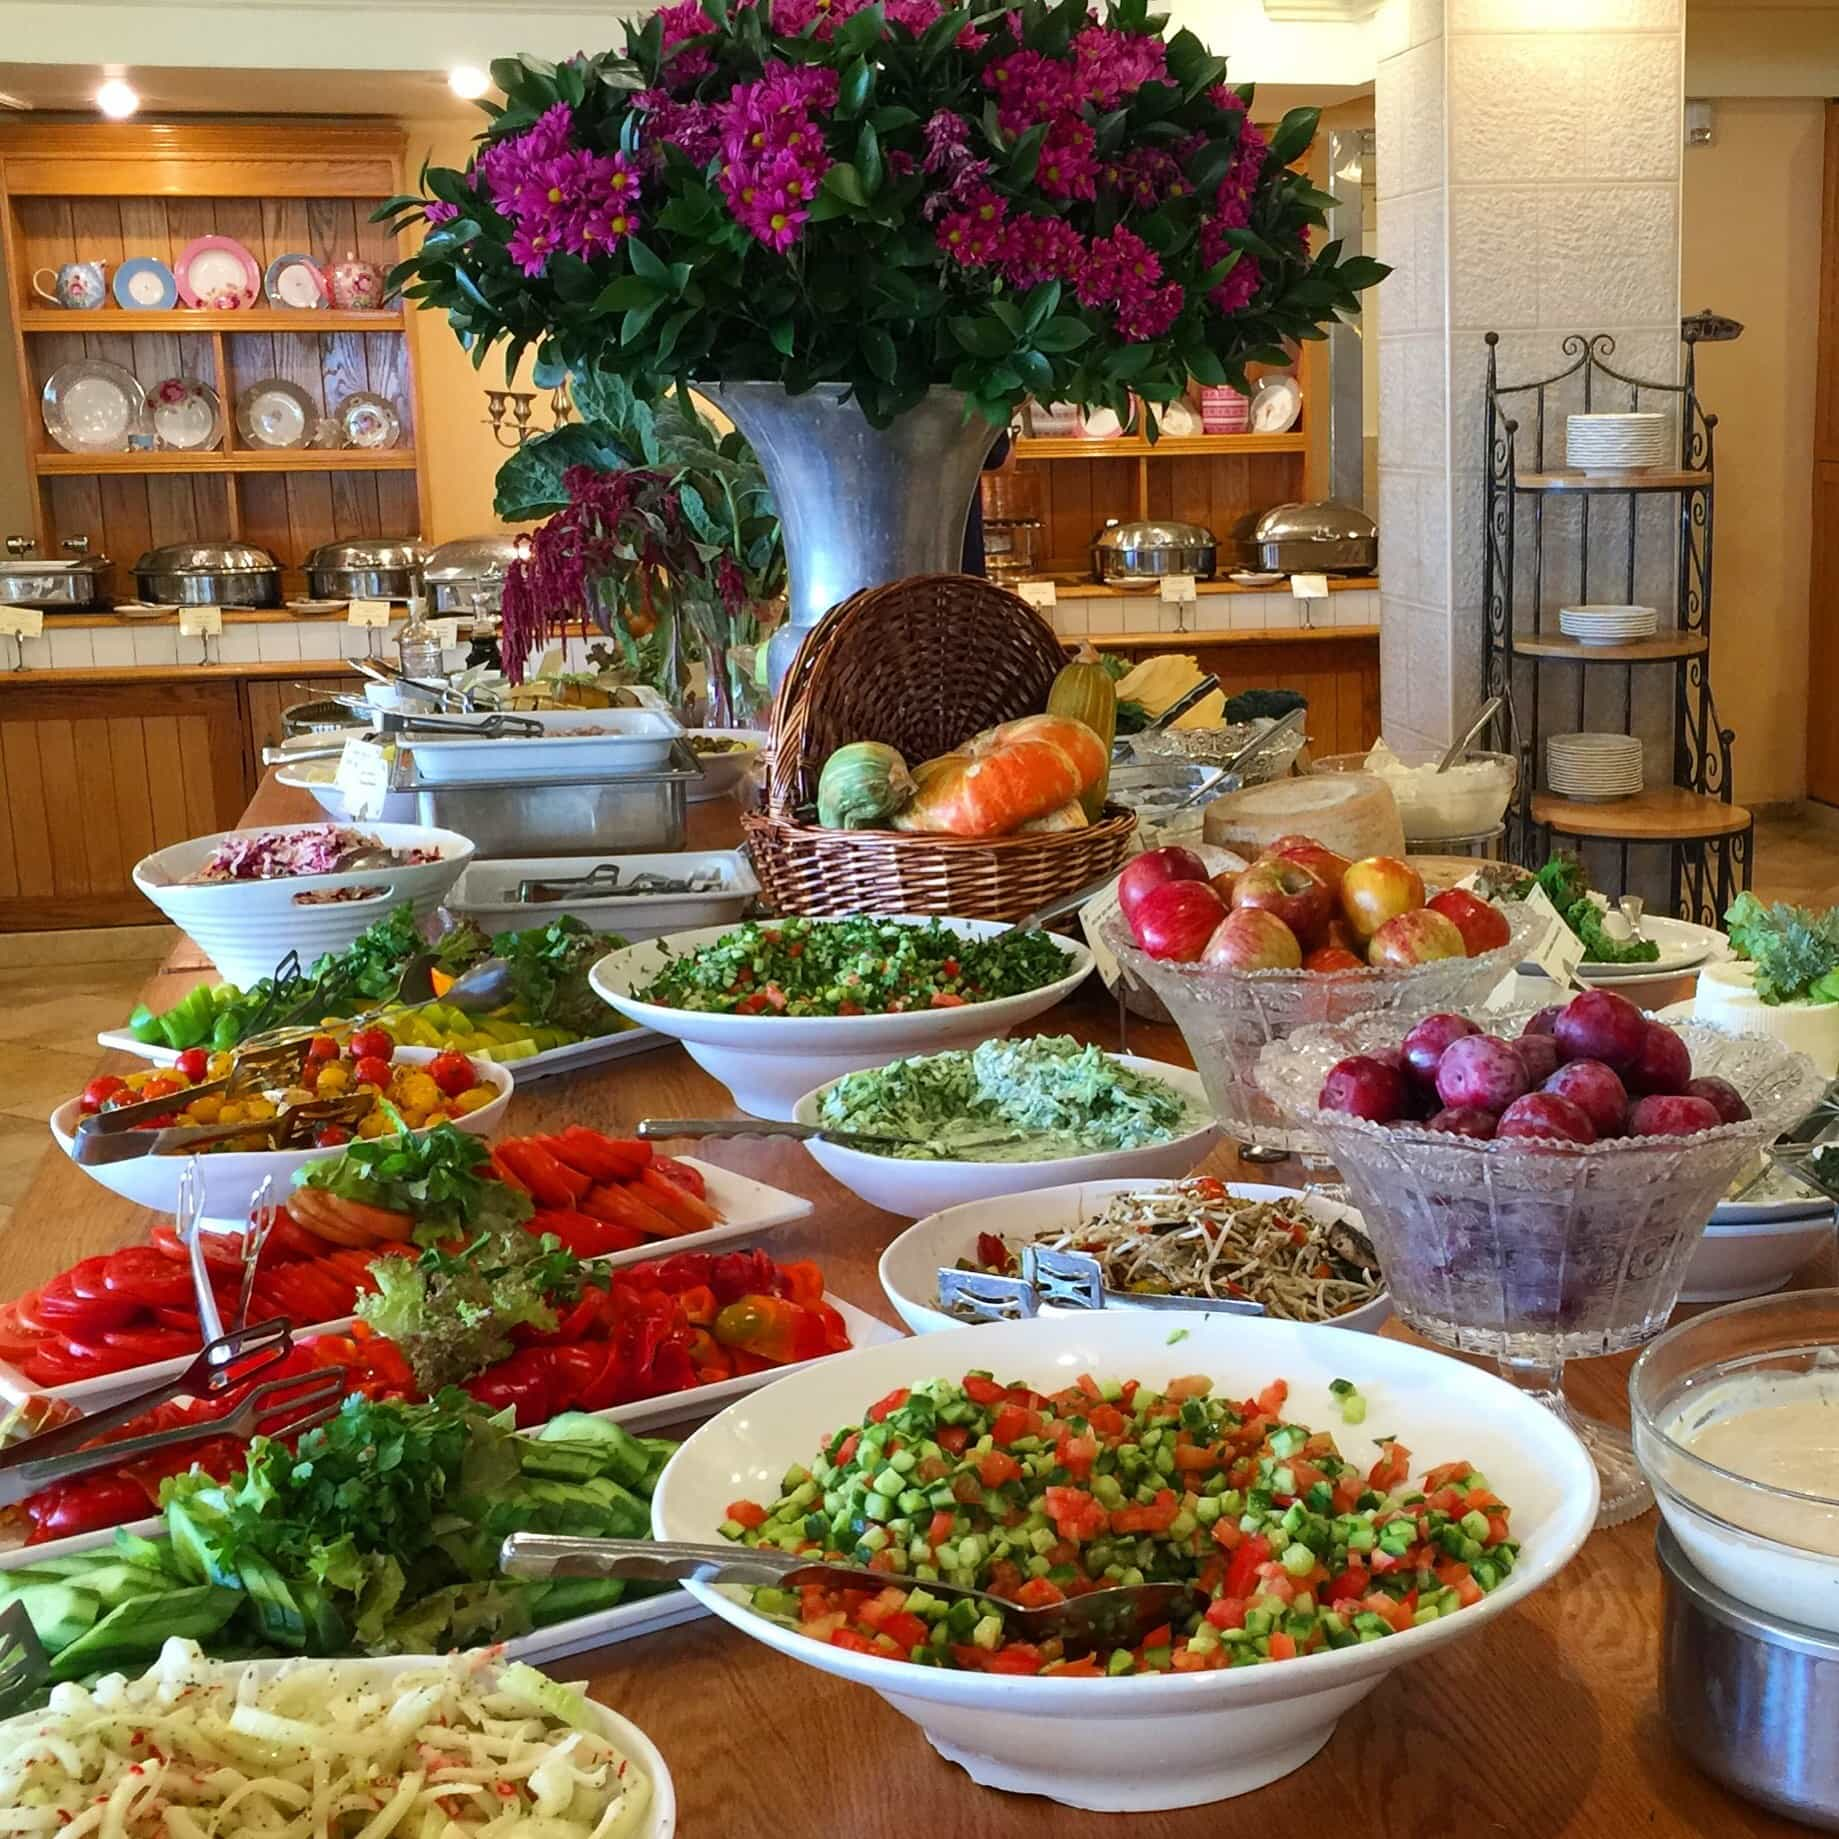 Gorgeous salads at the breakfast buffet at Mitzpe Hayamim, a spa hotel with its own organic farm in Rosh Pinna, Israel